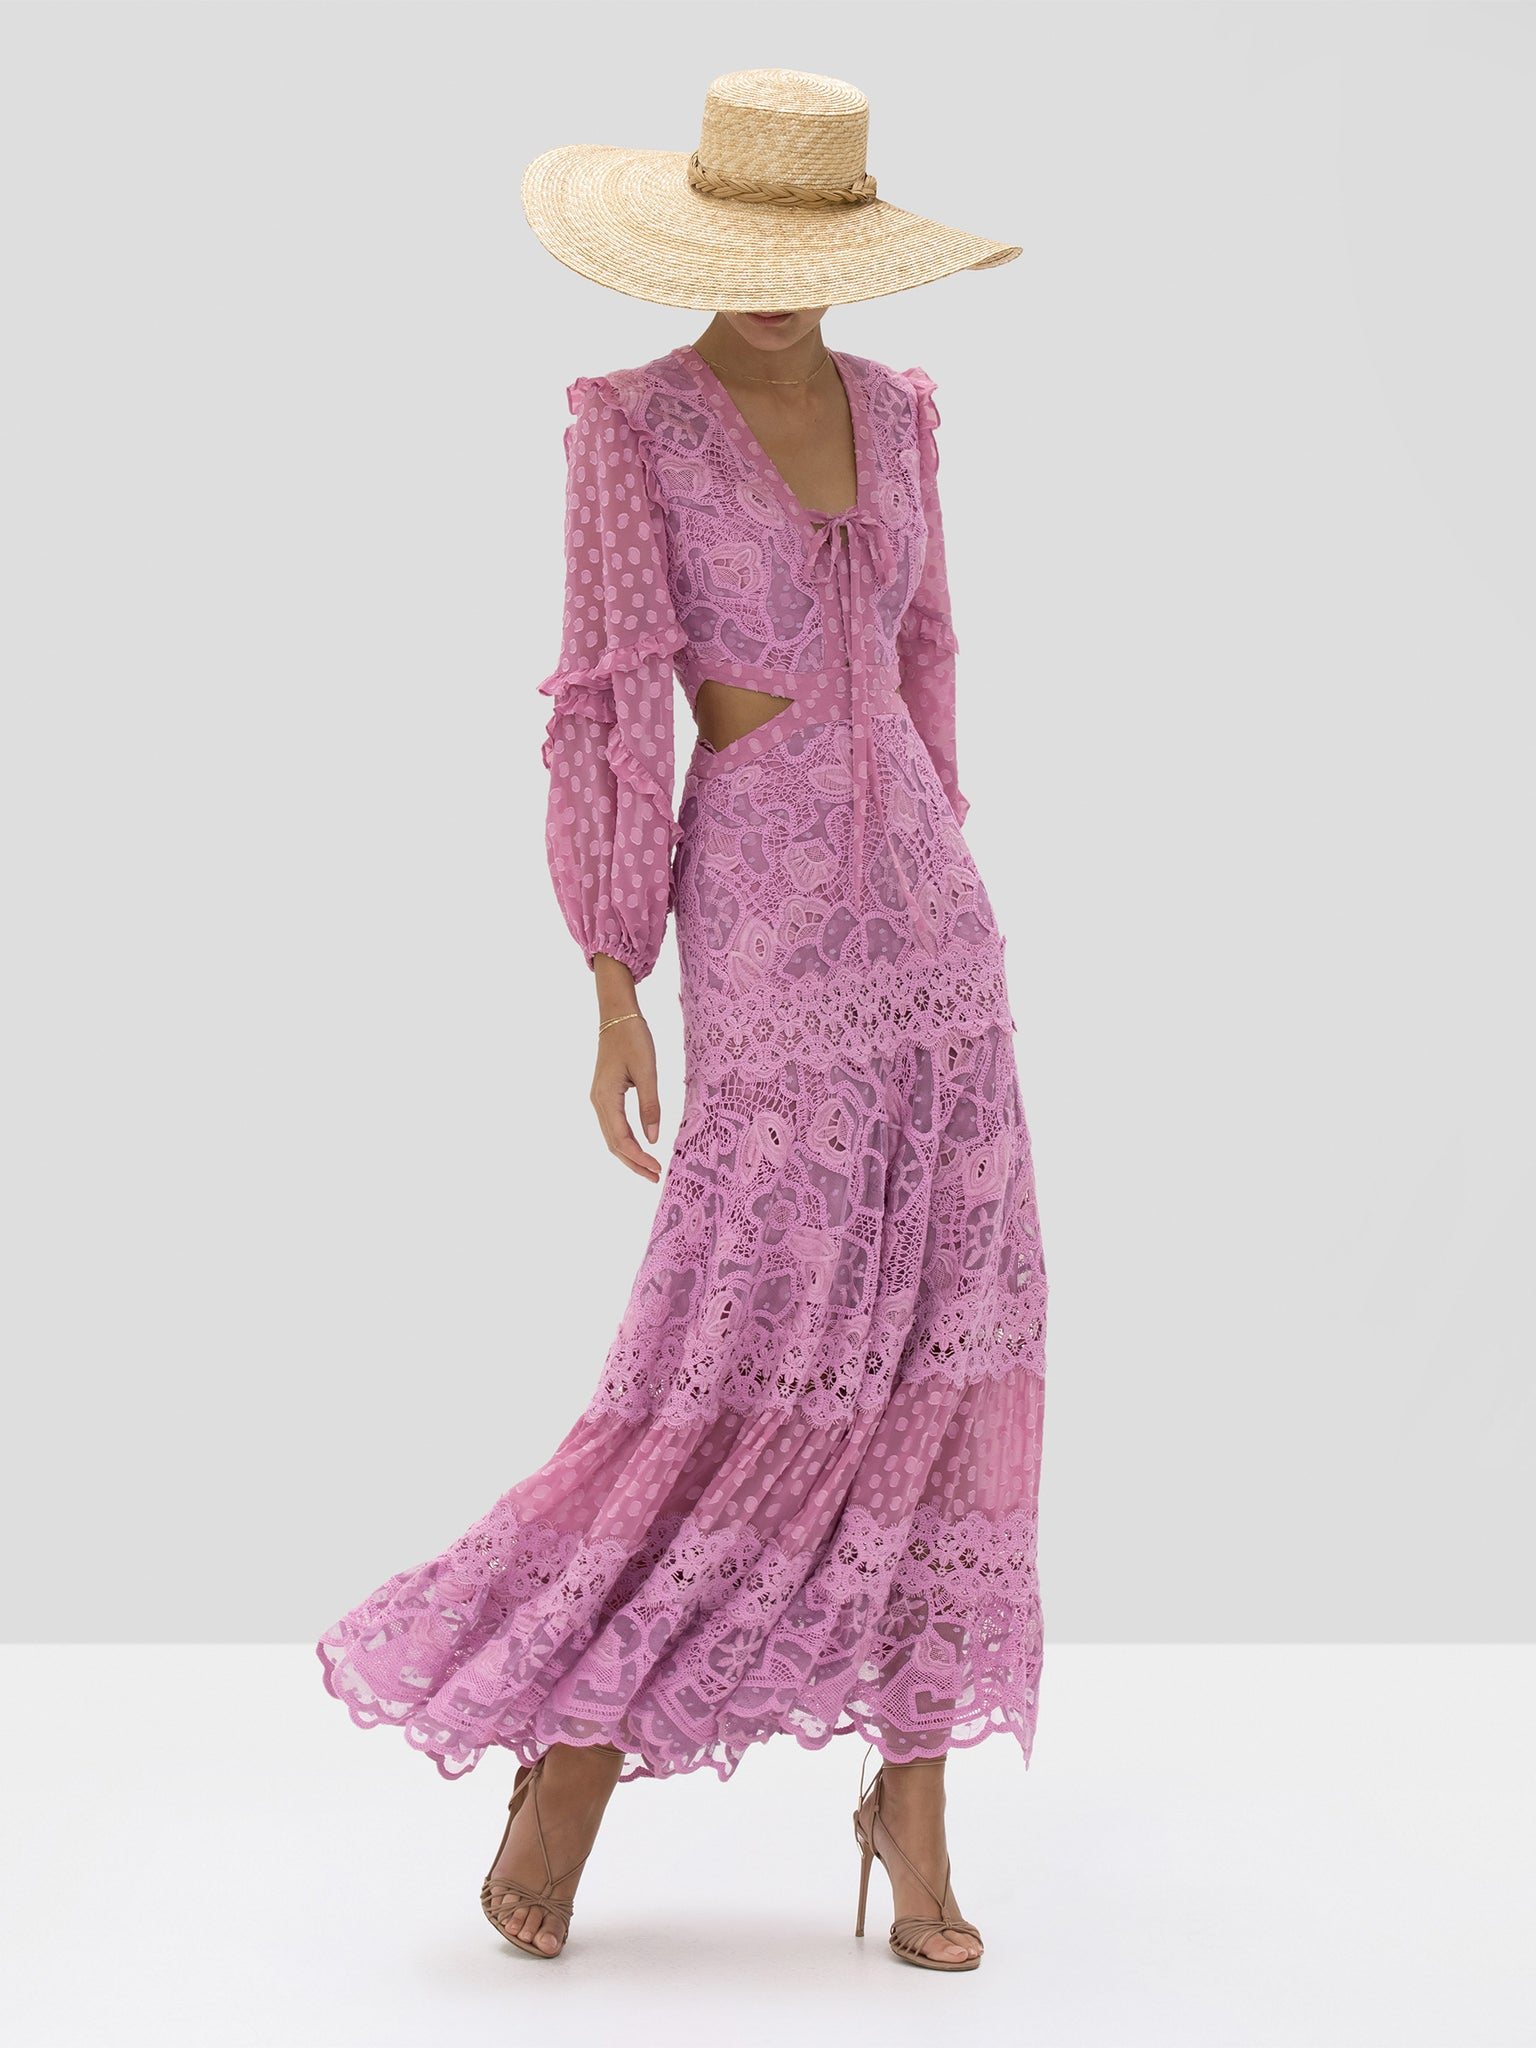 zendaya dress in lilac macrame